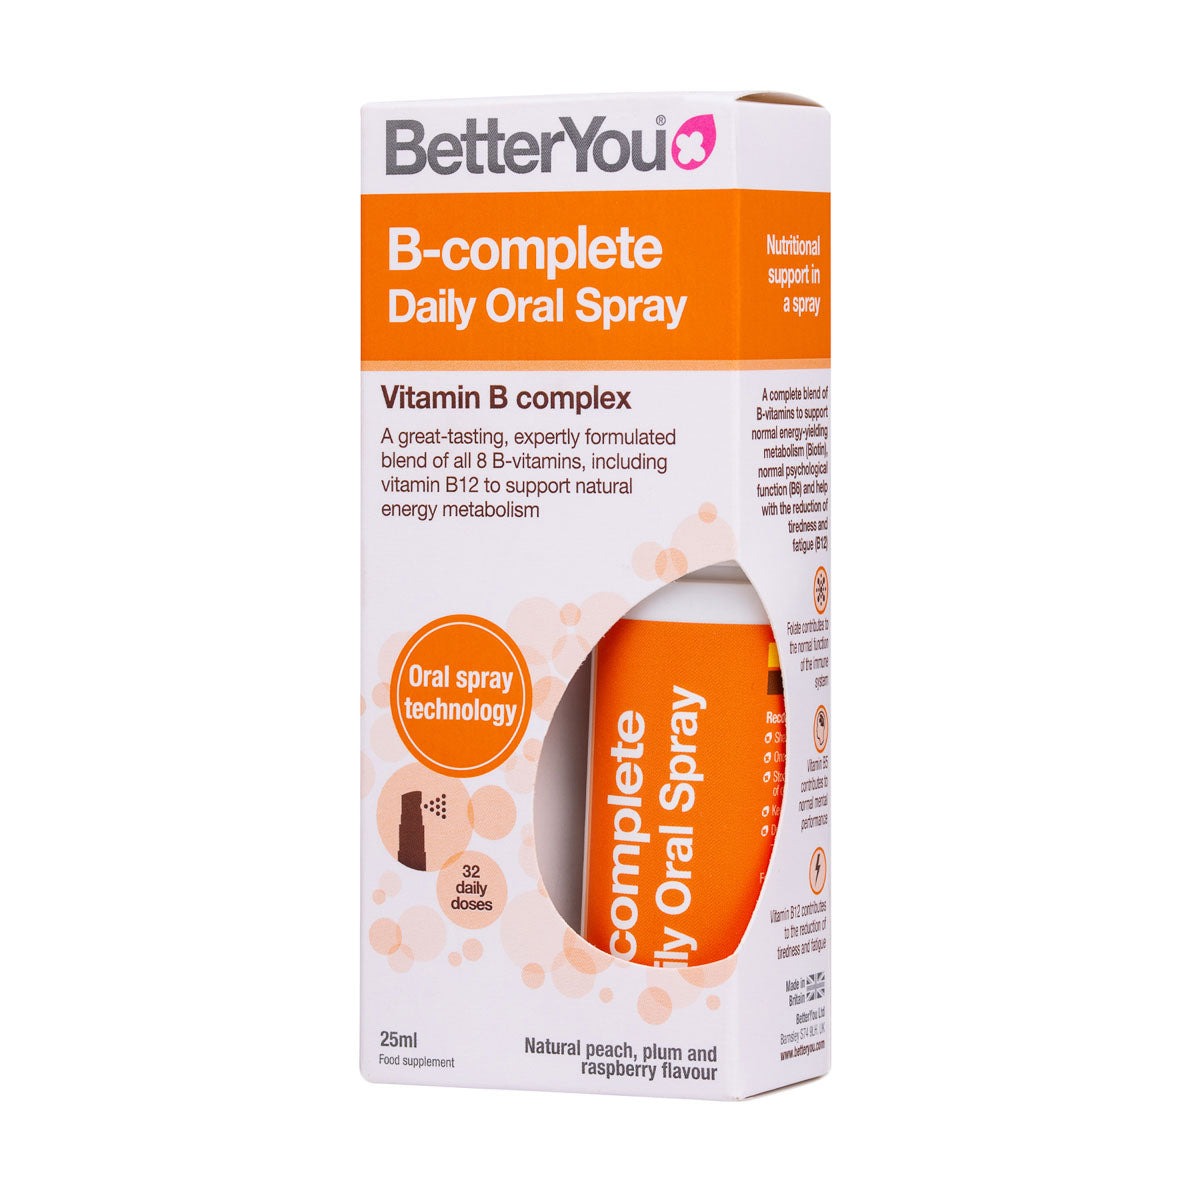 B Complete Daily Oral Spray (25ml) - BetterYou